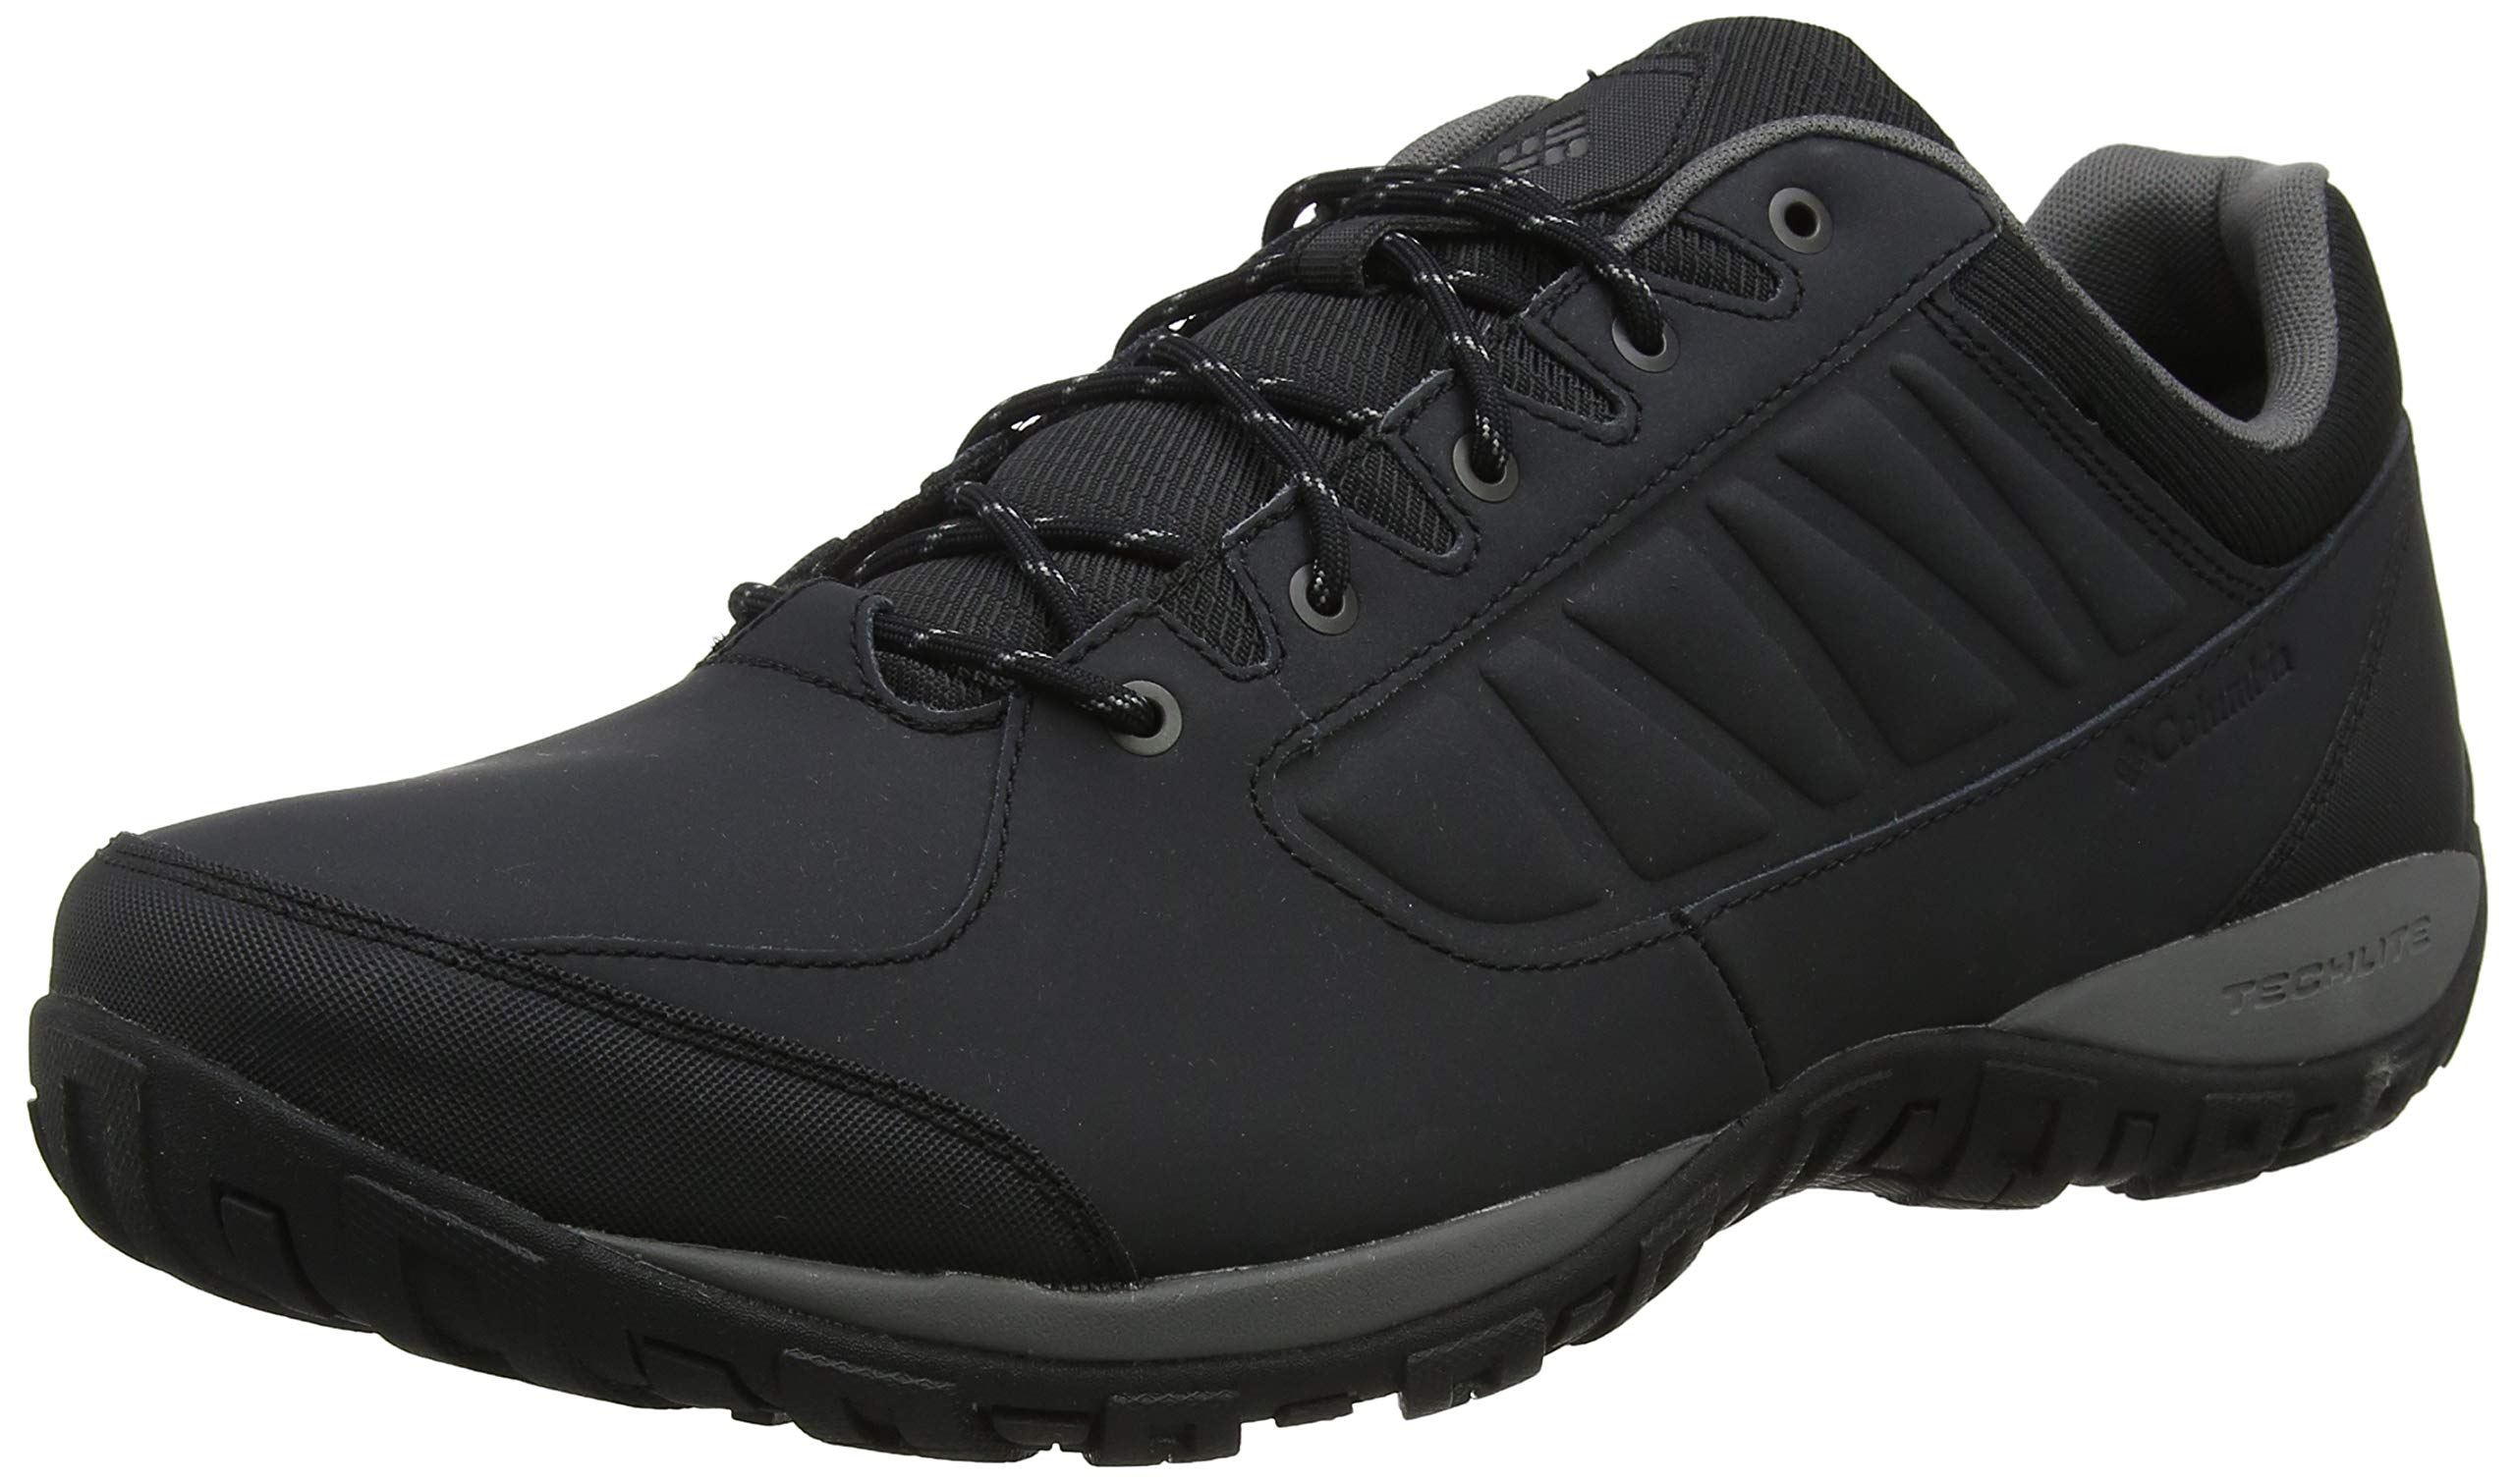 Homme Top Chaussures Selon Les Multisports Notes De Outdoor n0PXNwO8k